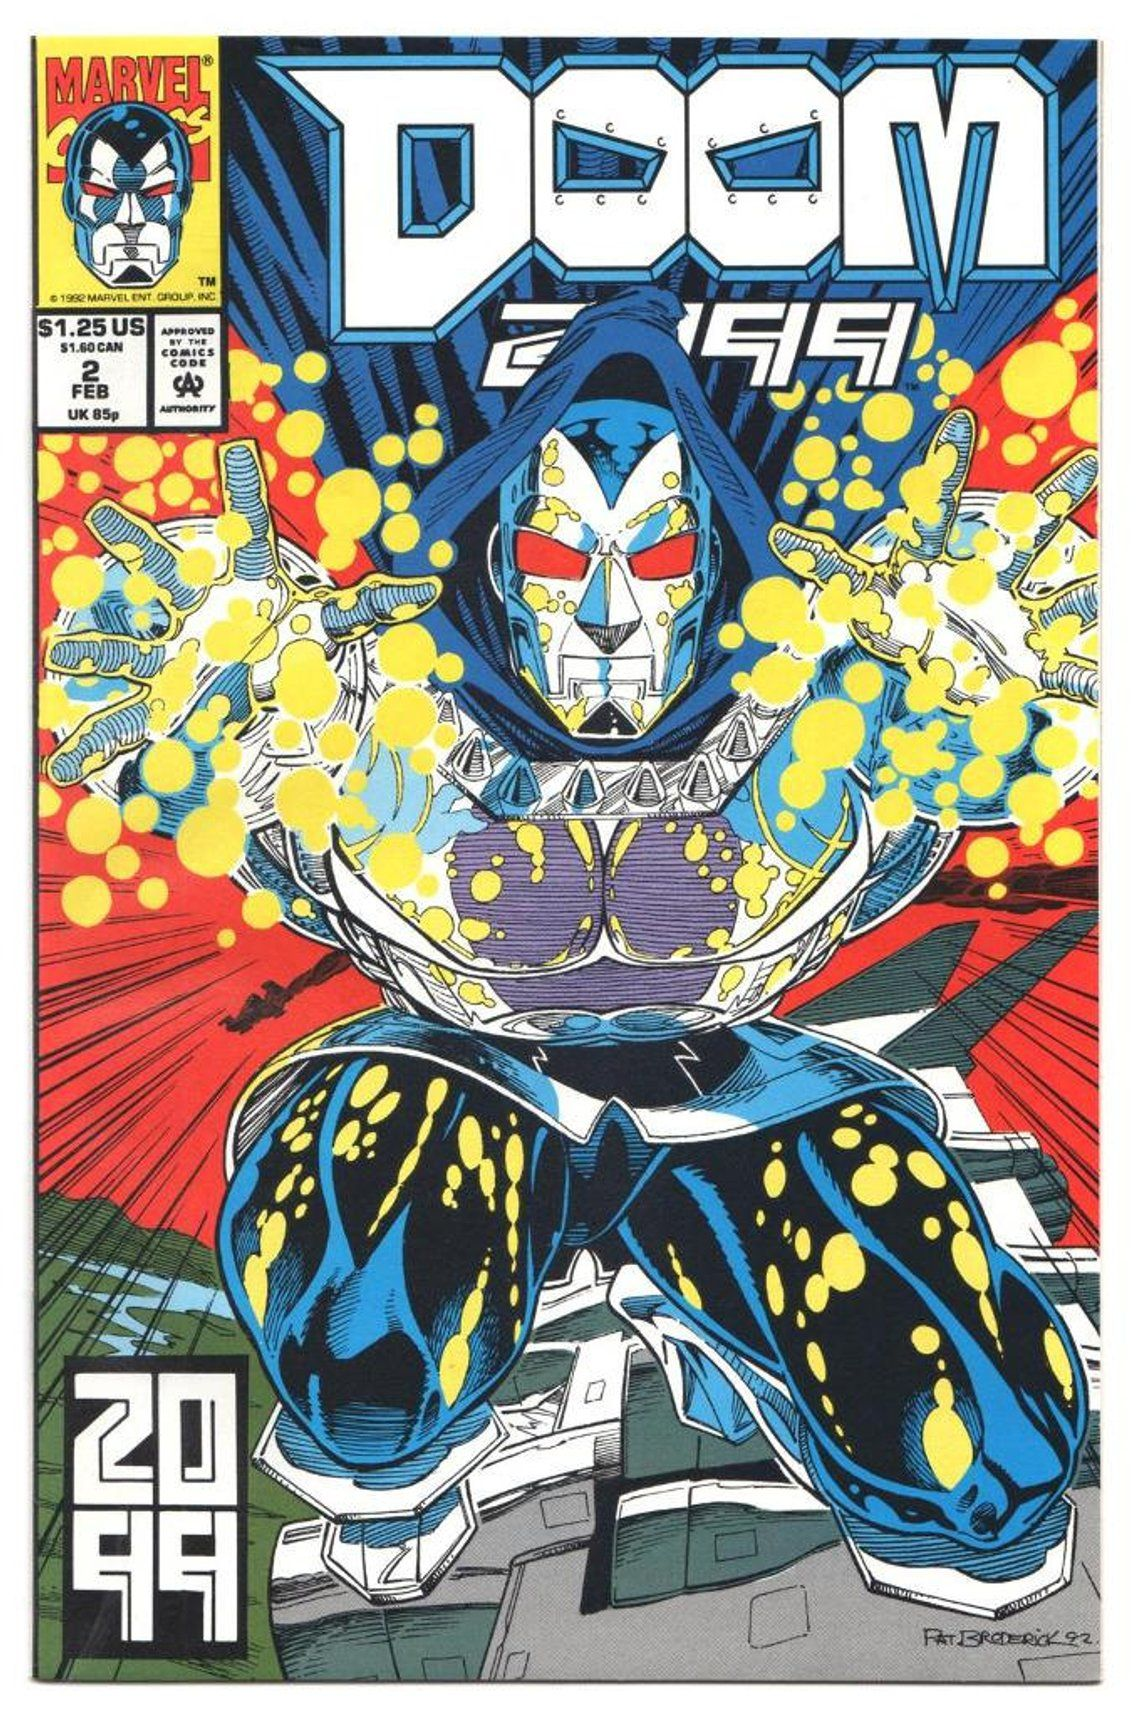 7 Muses Comics doom 2099 - issue's 1 2 3 4 5 6 7 8 - 1993 - modern - nm+